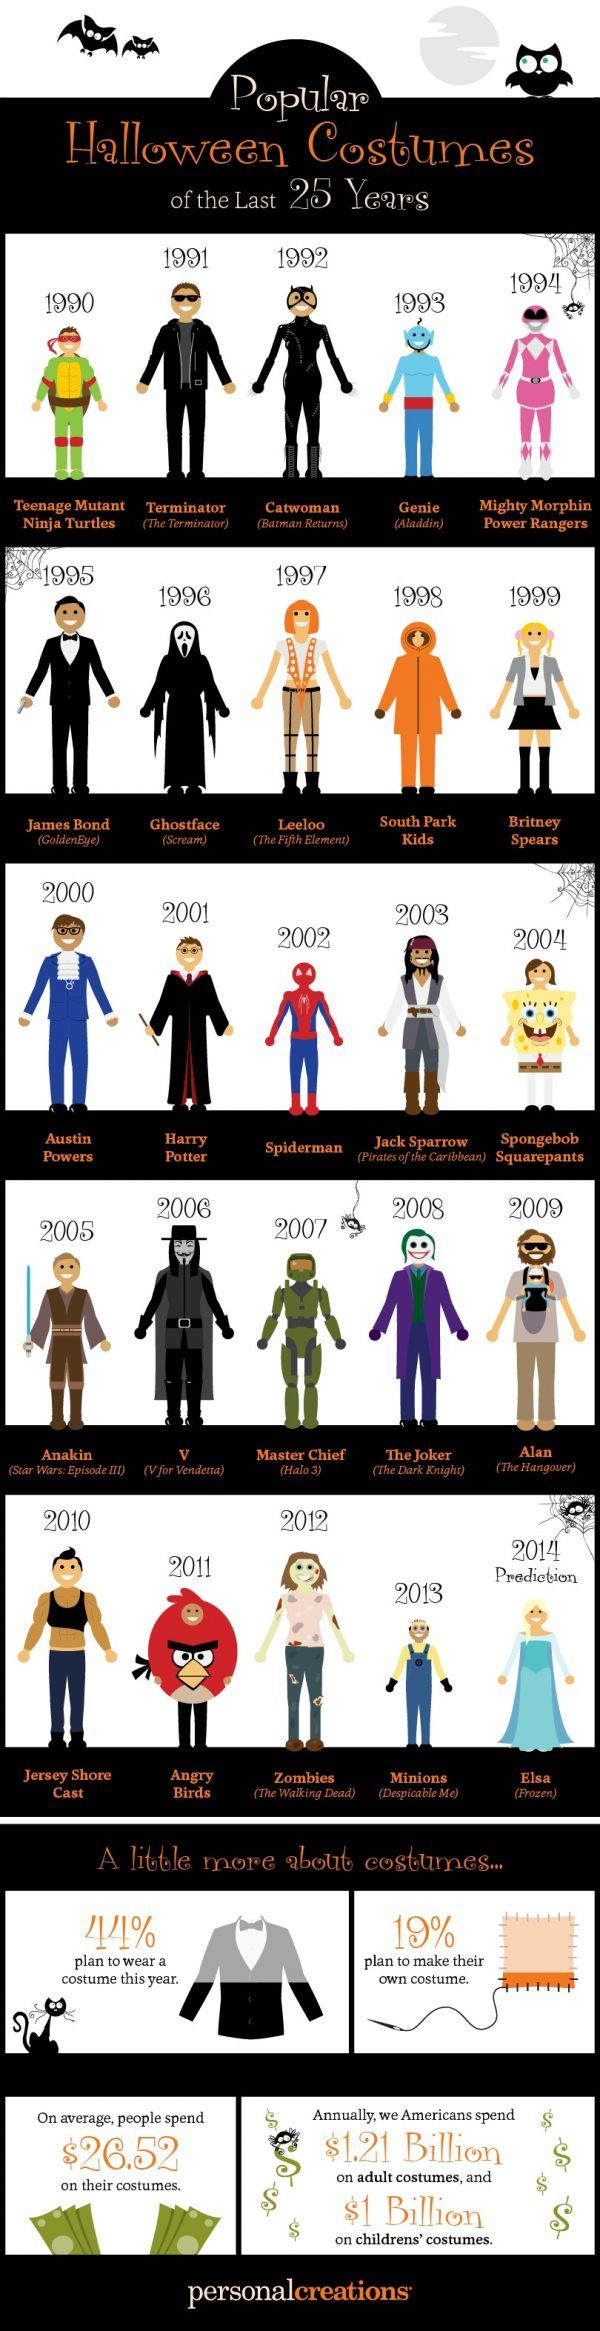 Personal Creations compiled a list of popular Halloween costumes for the last 25 years and created a infographic paying homage to some of the most popular o